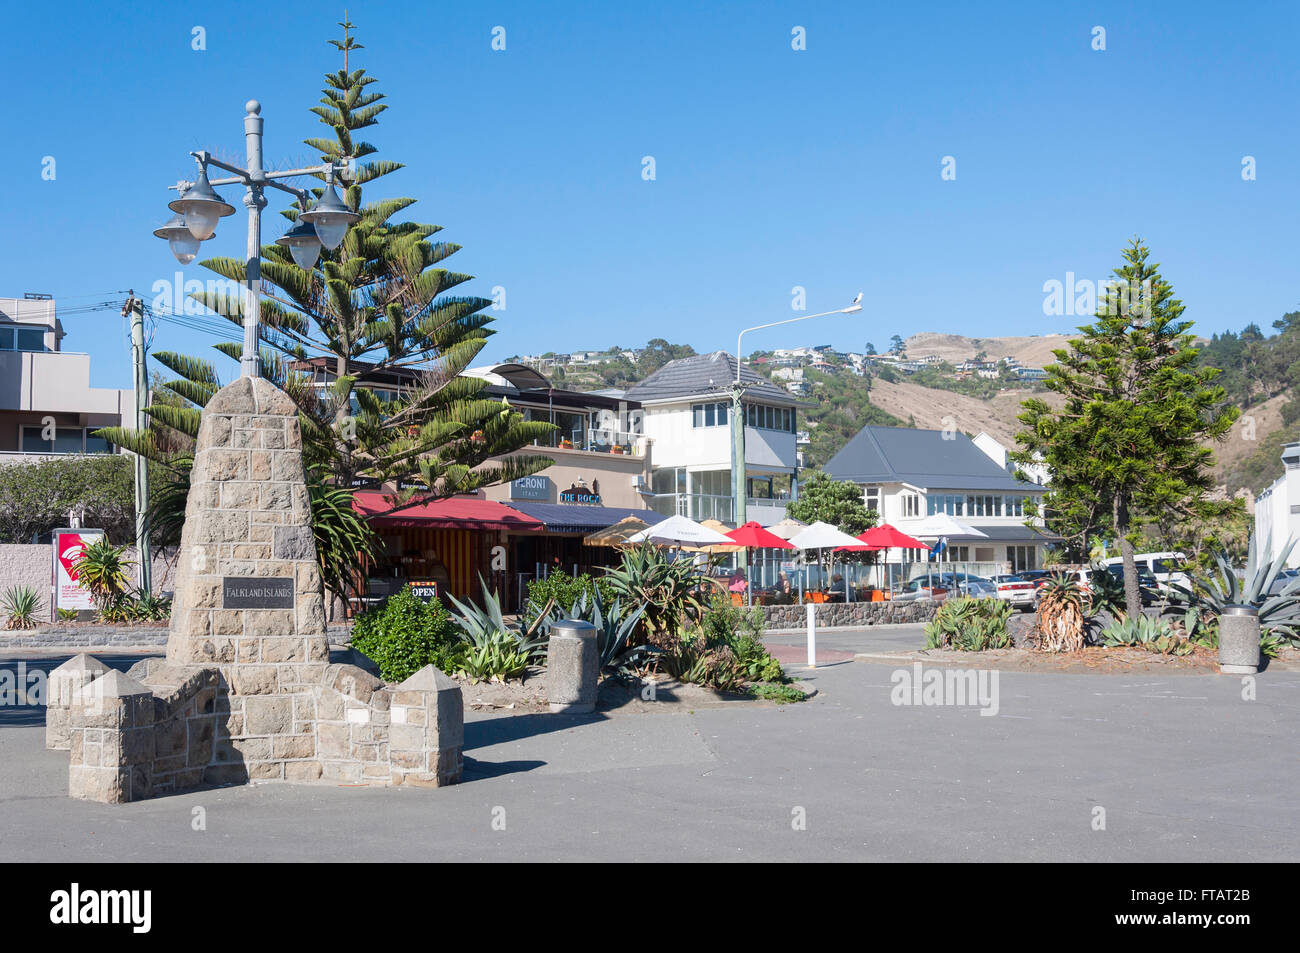 Foreshore at Sumner Beach, Esplanade, Sumner, Christchurch, Canterbury Region, South Island, New Zealand - Stock Image